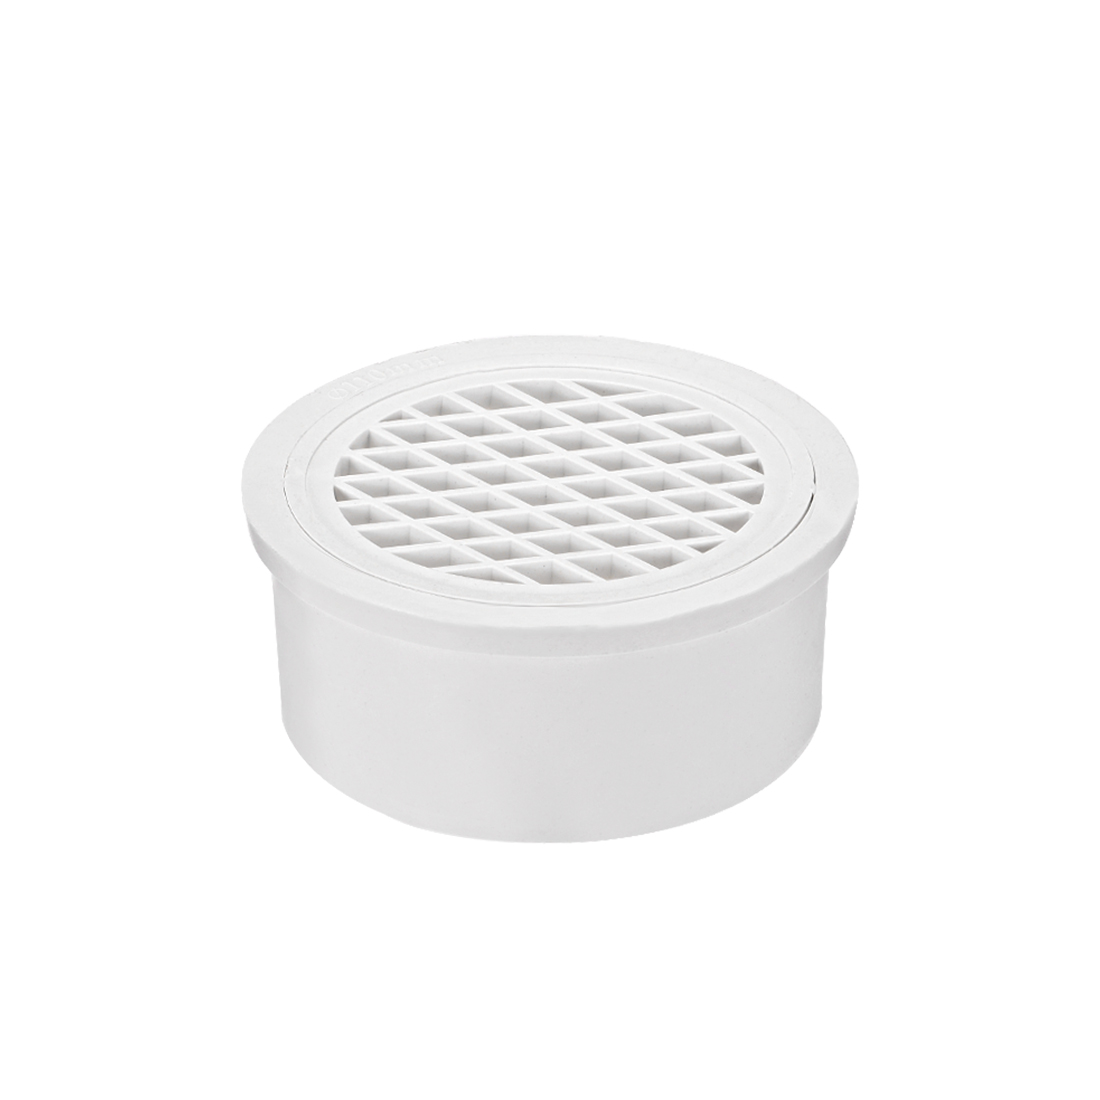 PVC Snap-In Floor Drain 4-inch Bathroom Sink And Tub Drain Strainers